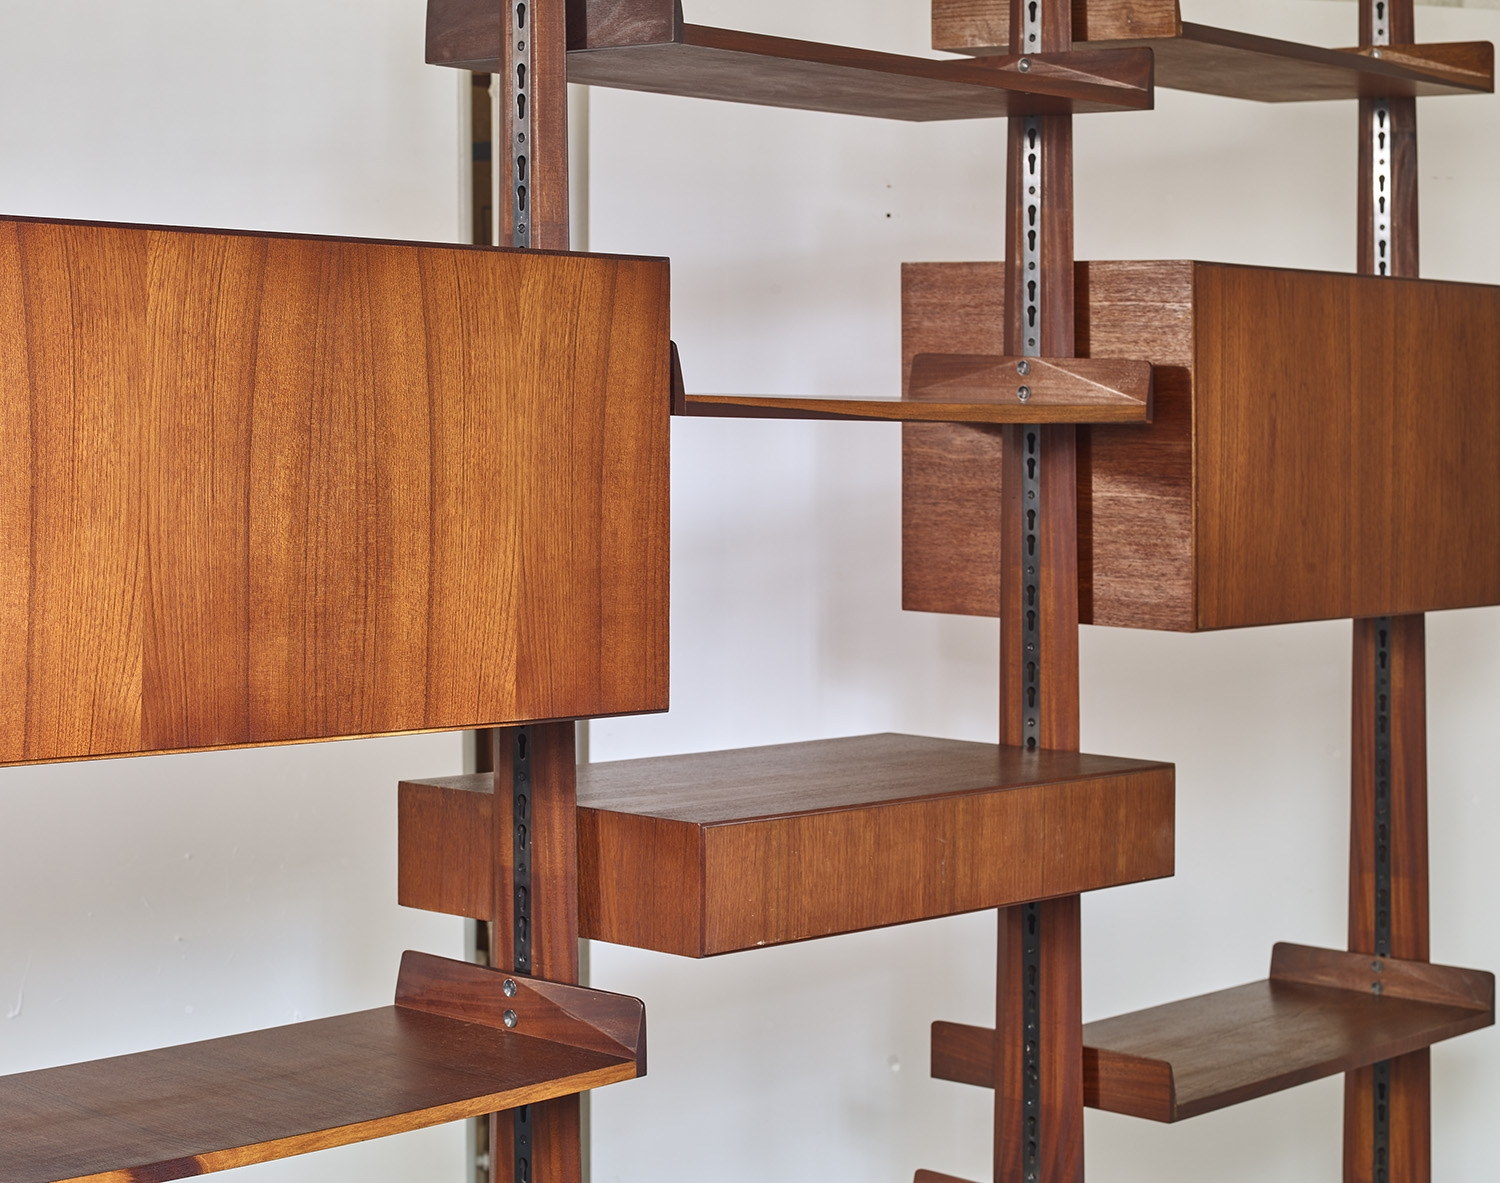 modular-teak-library-by-edmondo-palutari-for-dassi-italy-1959-image-01